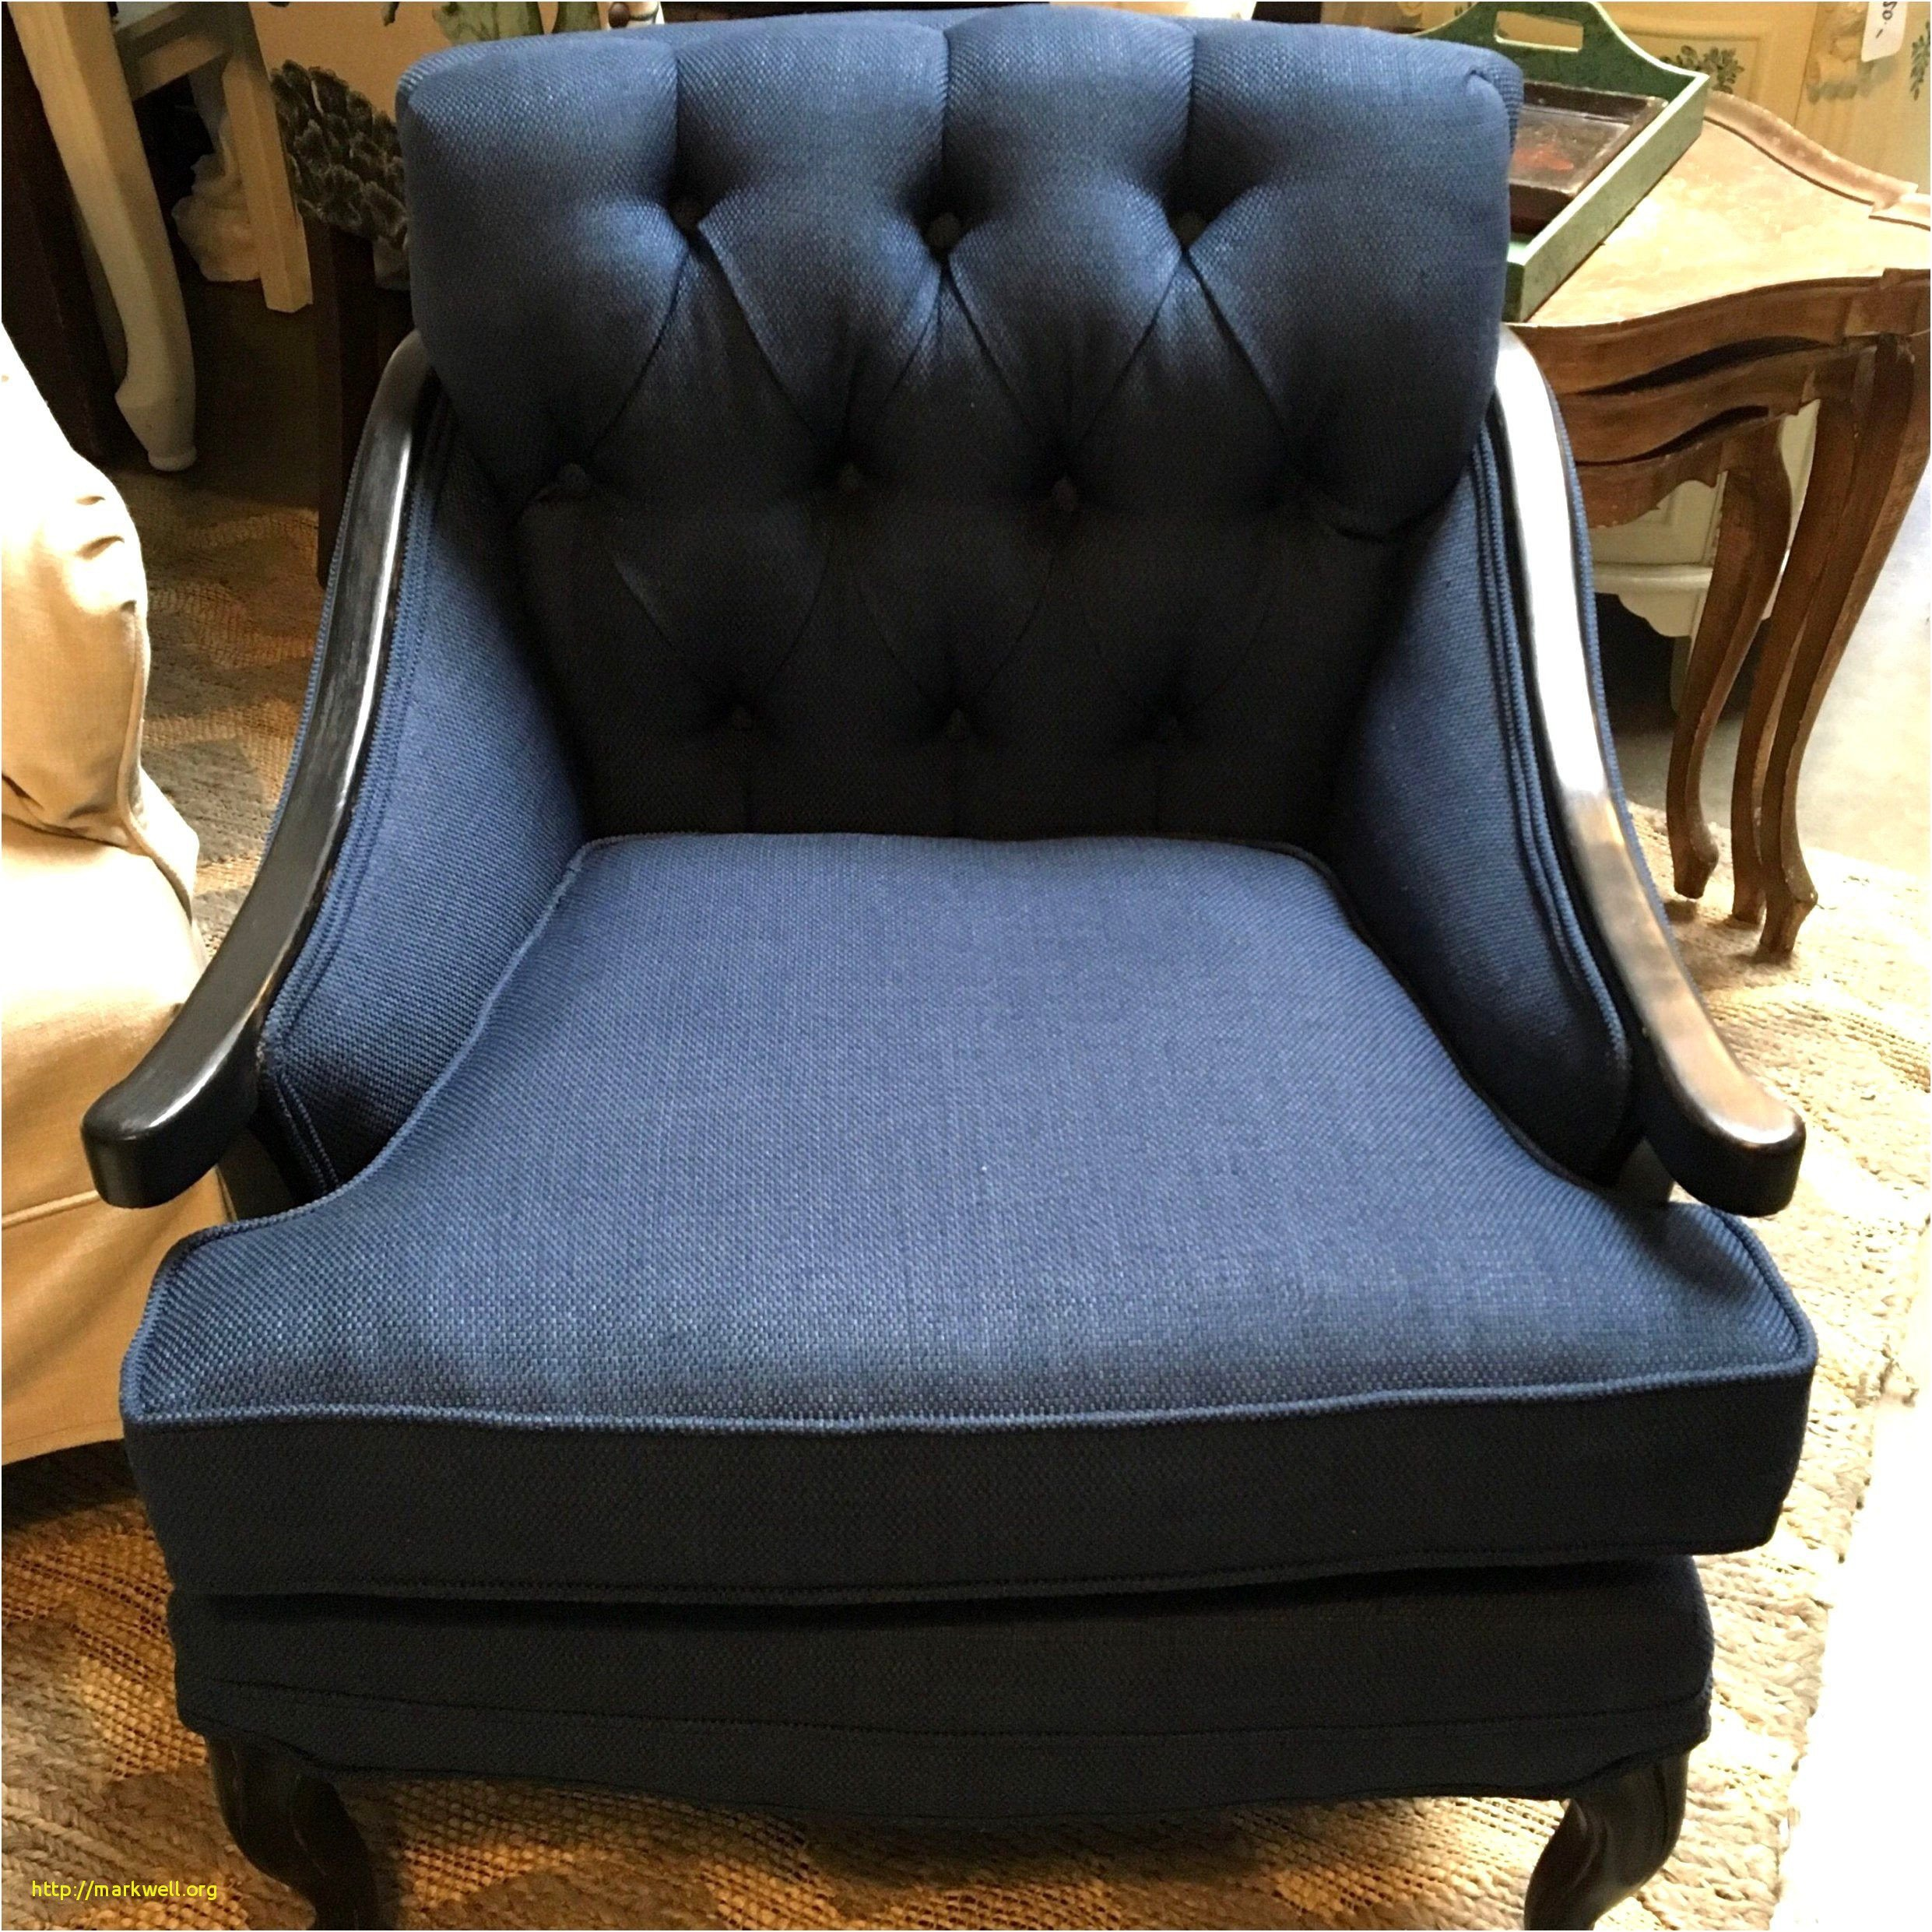 Nice Chairs for Bedroom Fresh Awesome Fy Reading Chairs